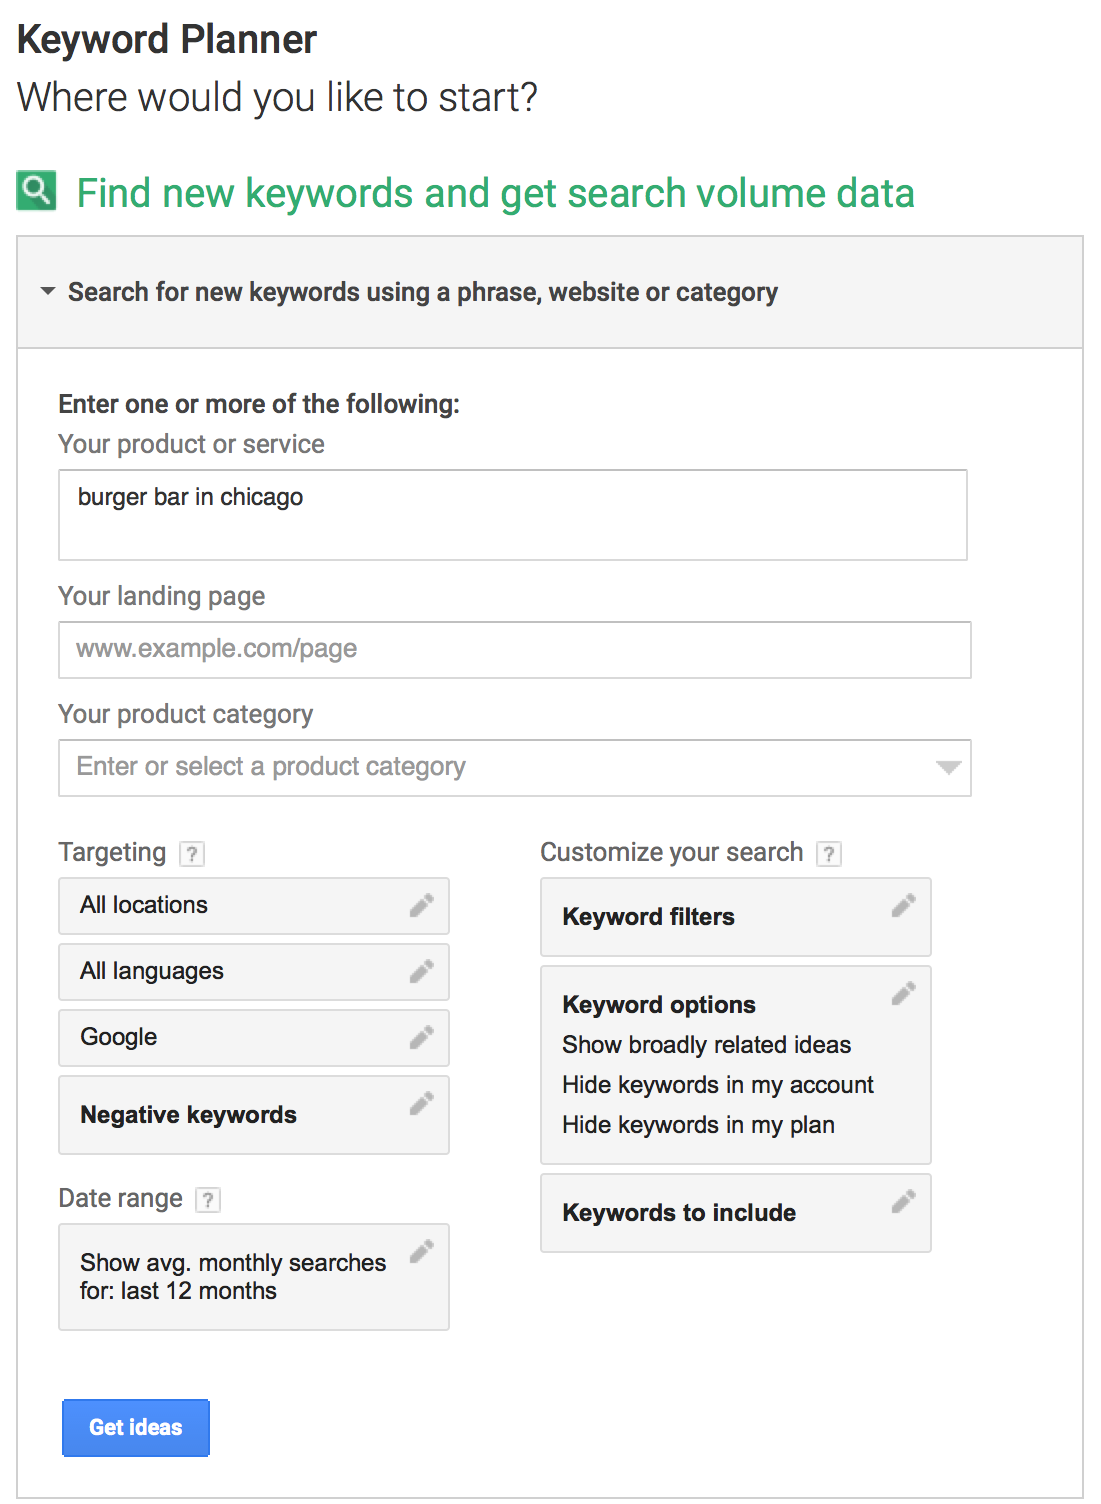 Keyword Planner - Step 1